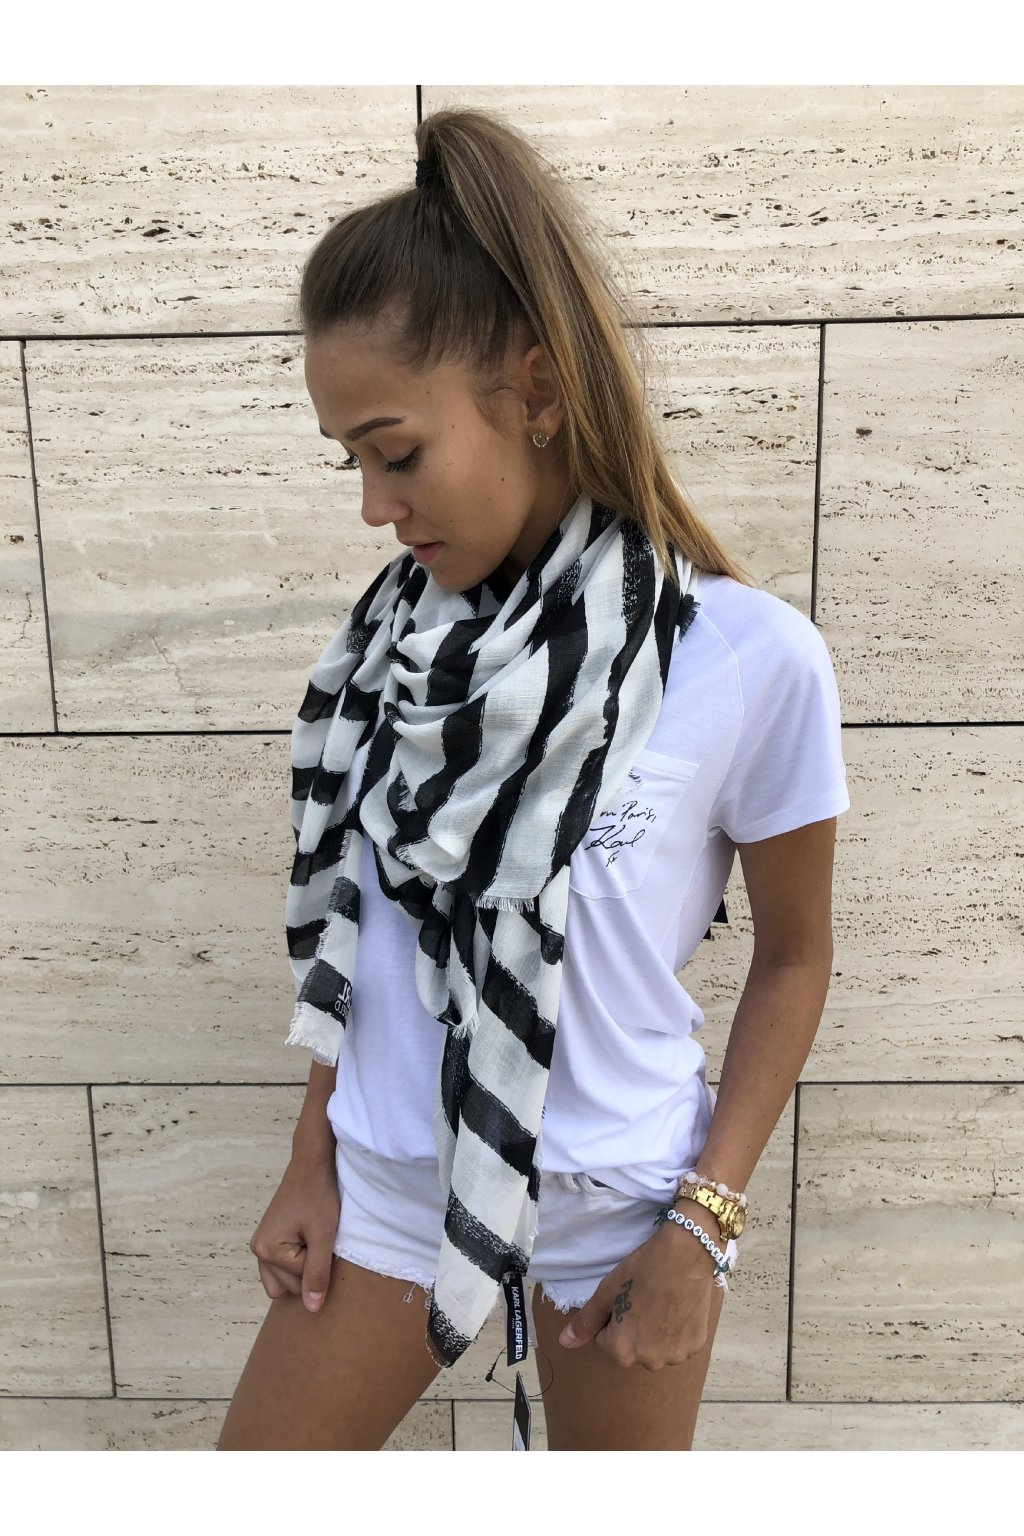 satek karl lagerfeld brush stroke striped scarf black eshopat cz 1